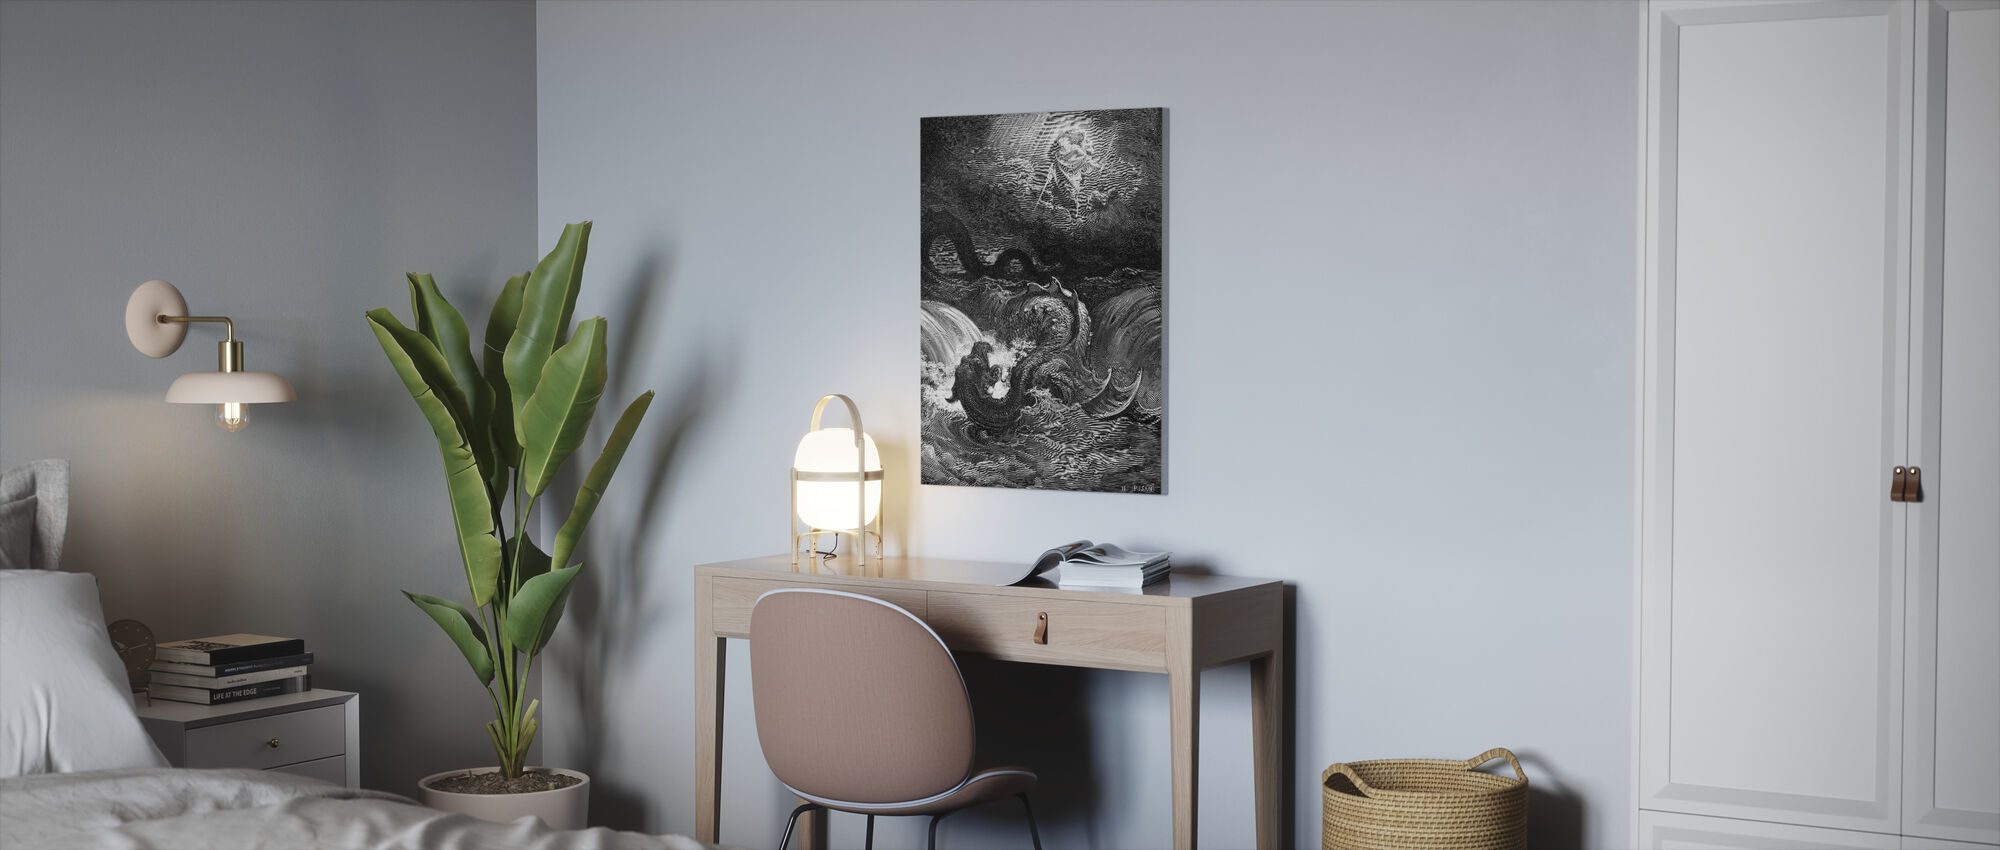 Esaias Syn - Gustave Dore - Canvas print - Office